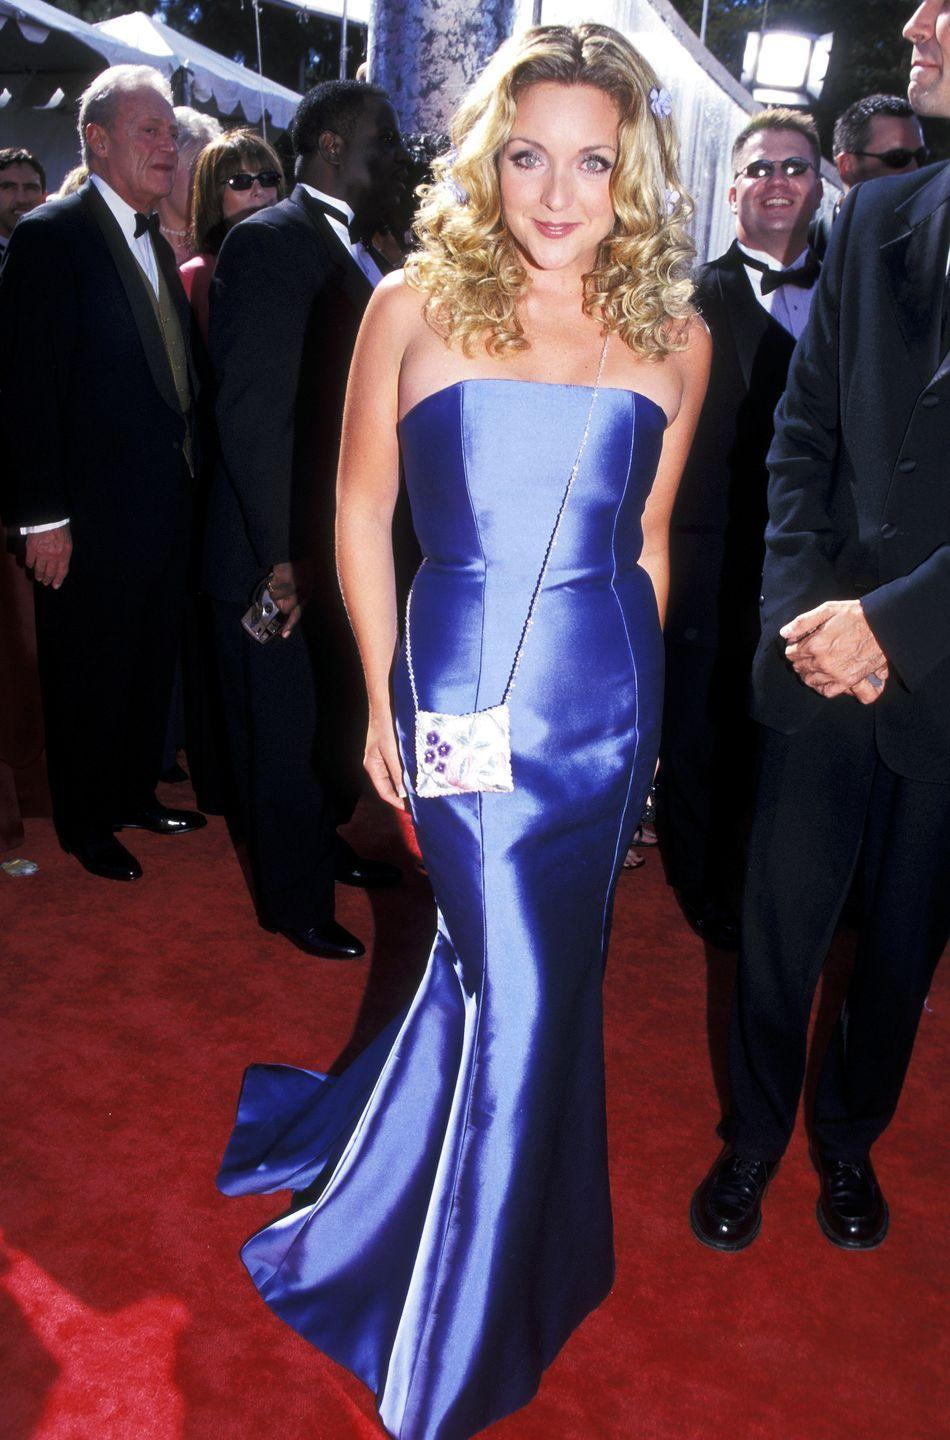 <p>Krakowski wore this very fitted (and very shiny) blue gown to the Emmy Awards in 1999.</p>